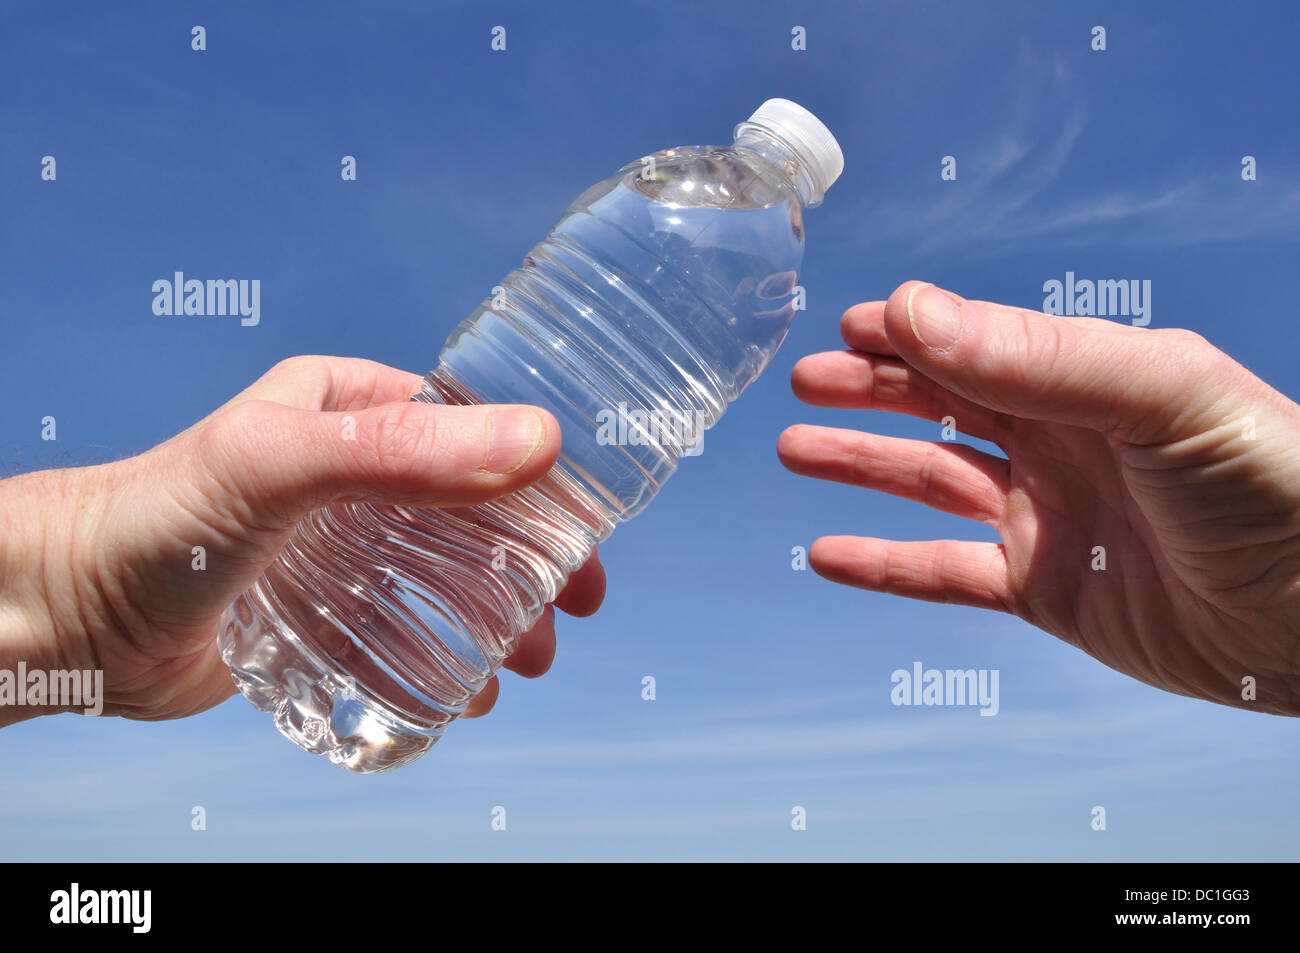 Hand Offering a Bottle of Water Against a Blue Sky - Stock Image